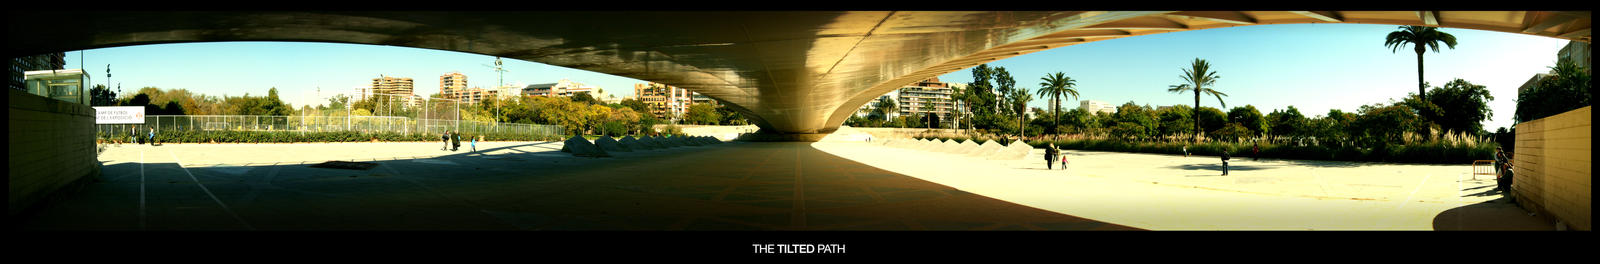 The Tilted Path